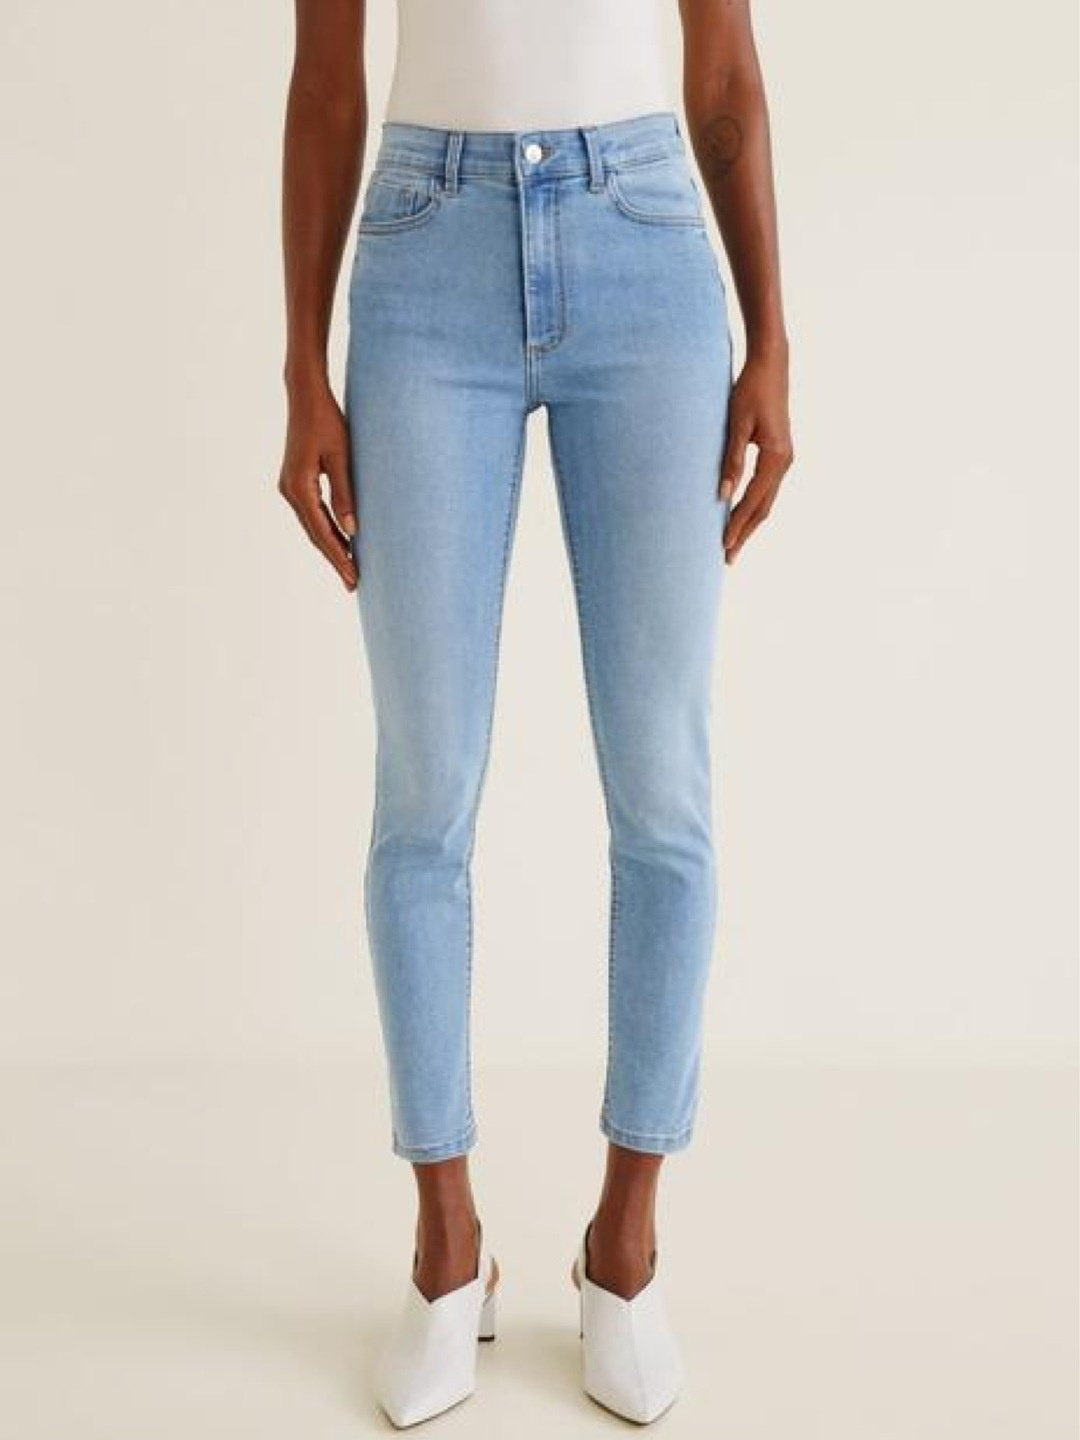 Damen hosen & jeans - MANGO photo 1